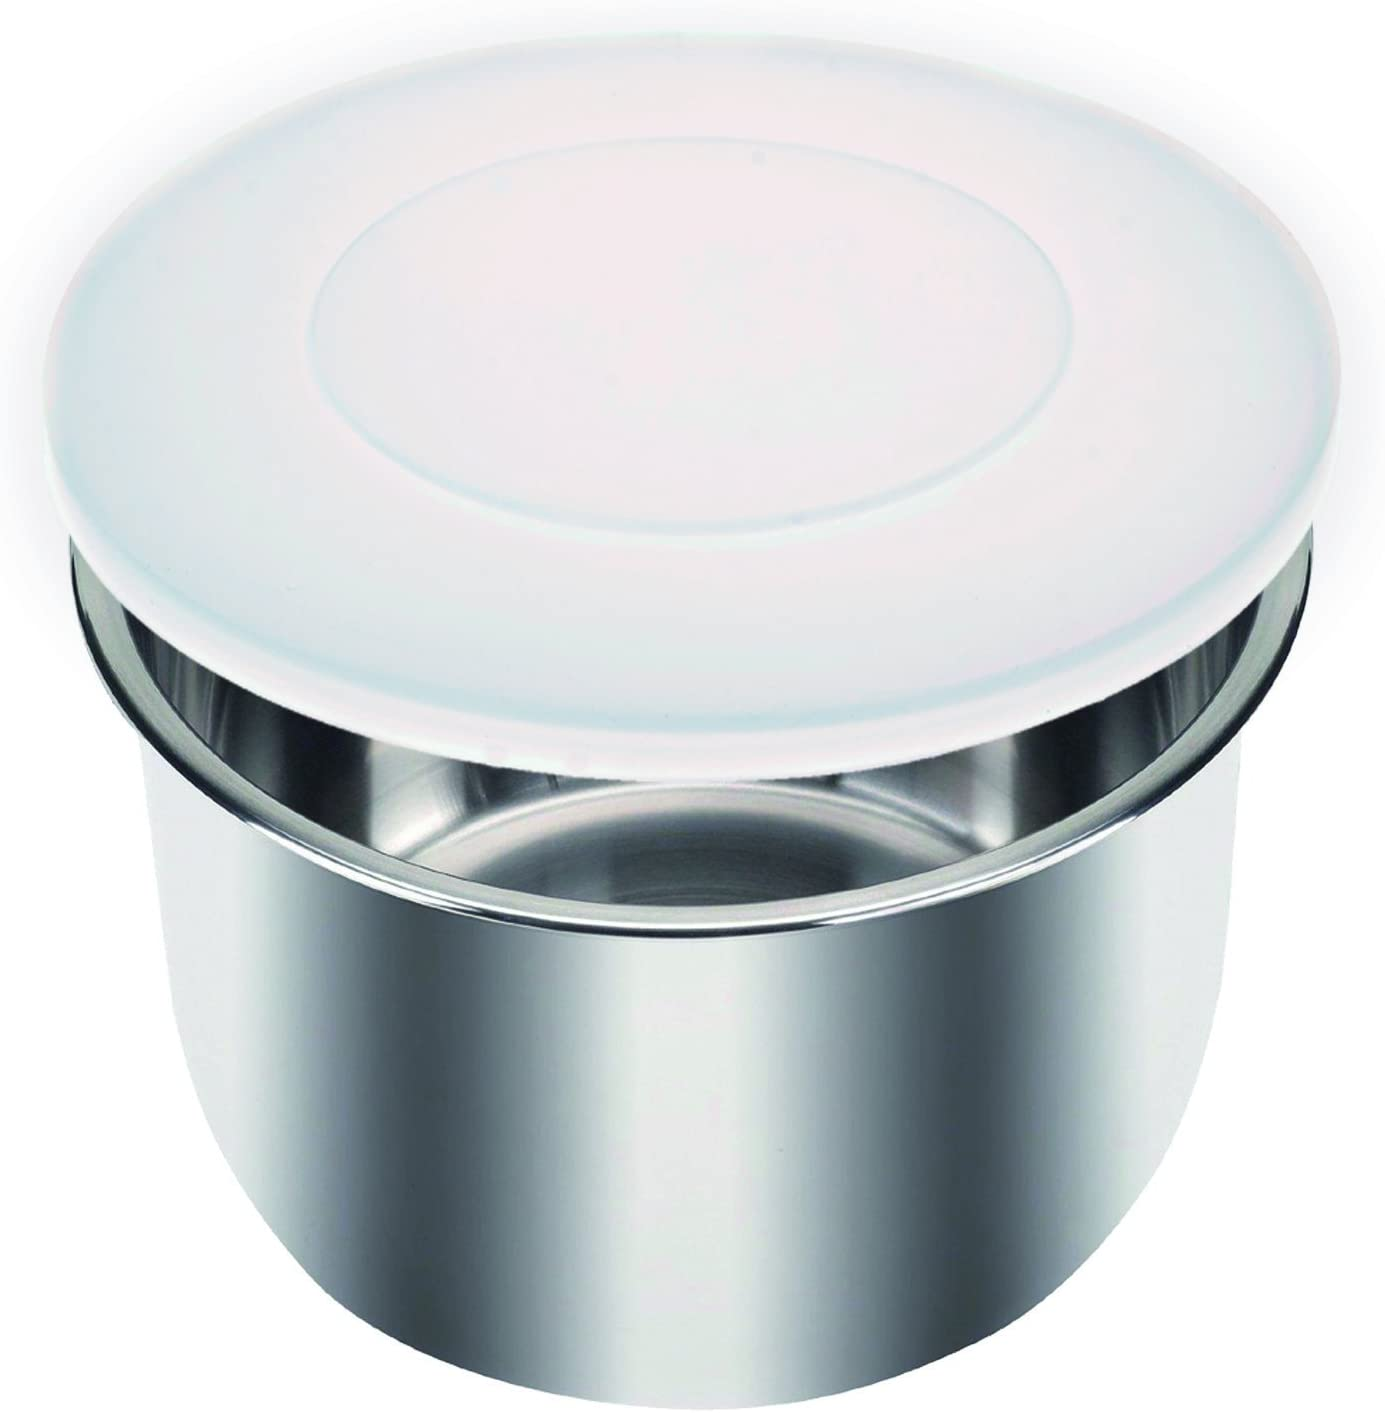 Impresa Compatible Silicone Lid/Cover for Instant Pot IP-DUO60, IP-LUX60, IP-DUO50, IP-LUX50, Smart-60, IP-CSG60 and IP-CSG50